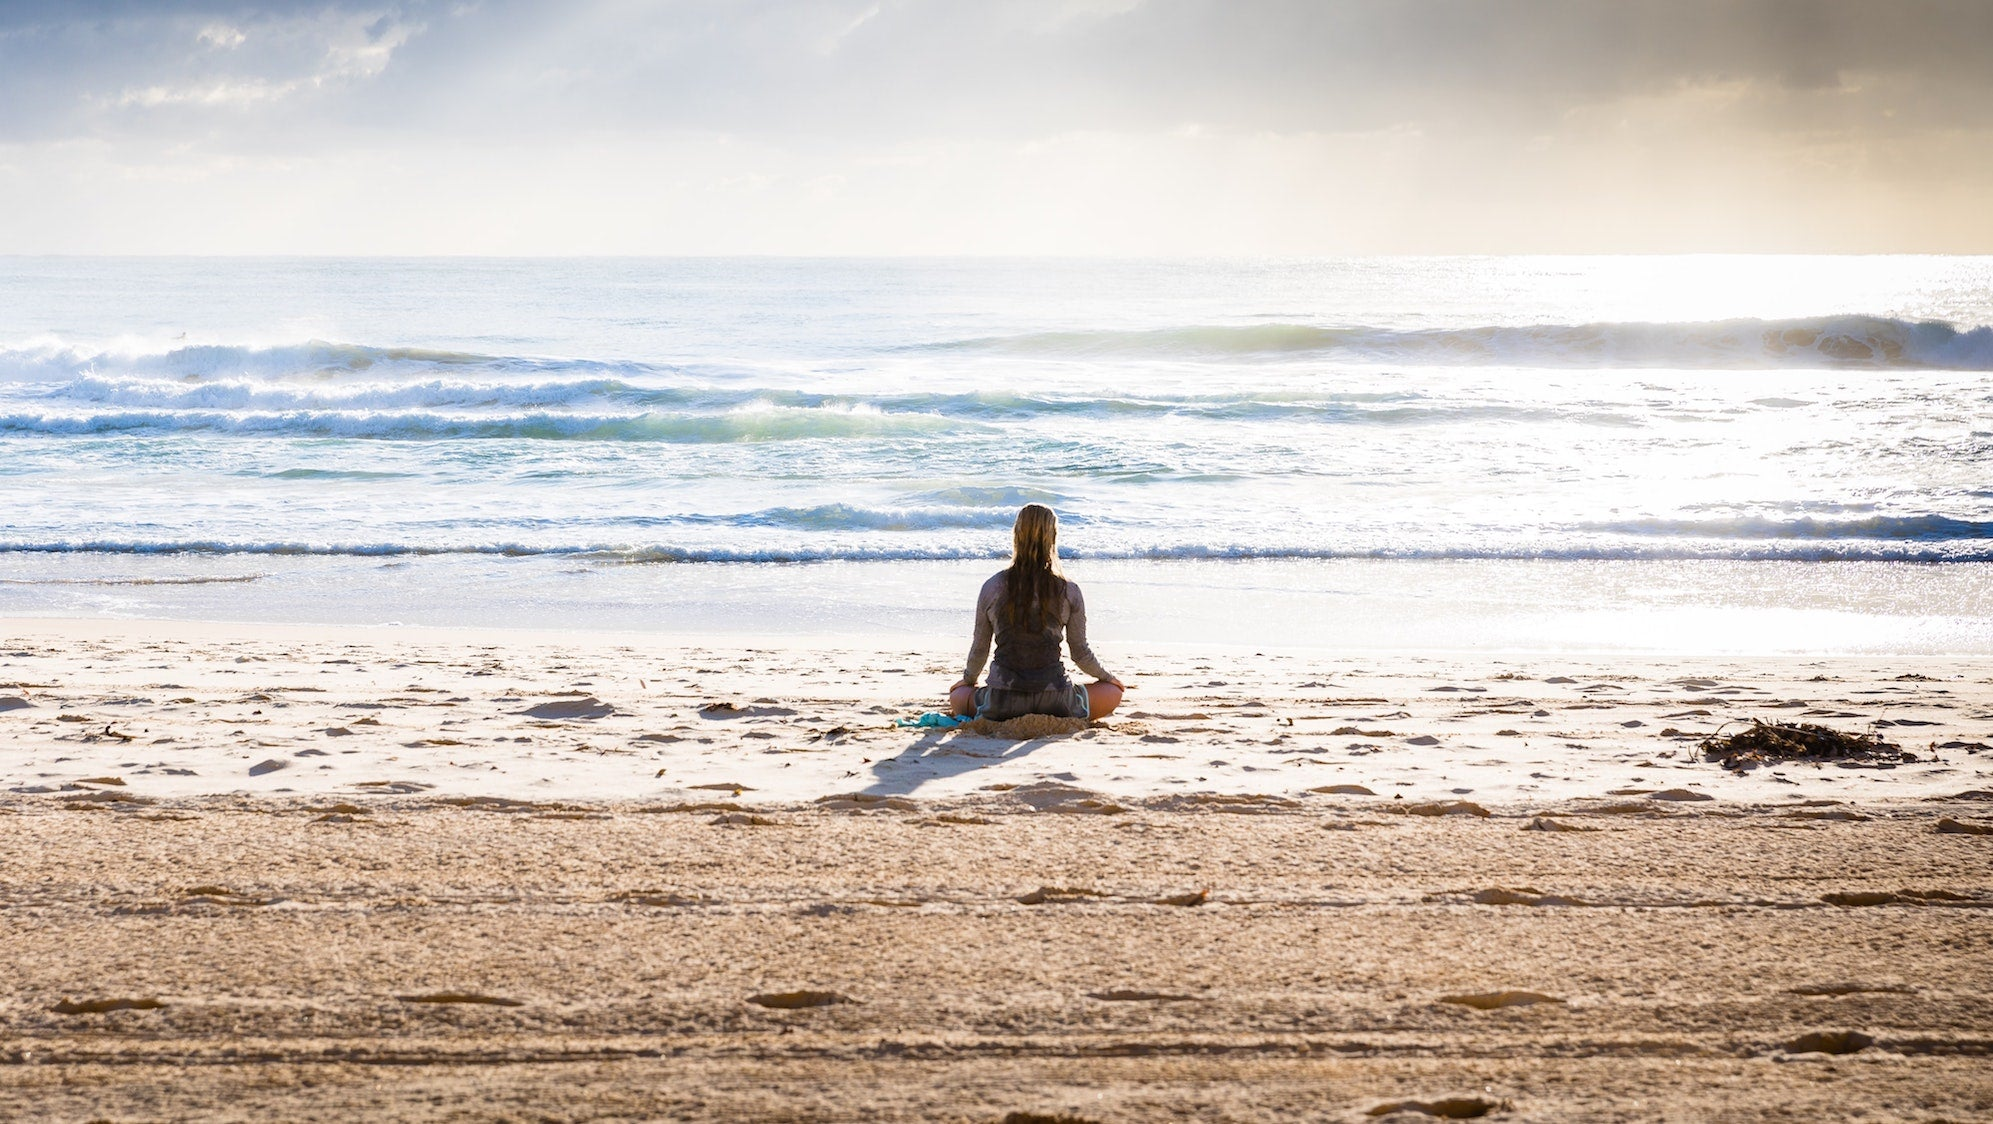 Girl meditating on the beach